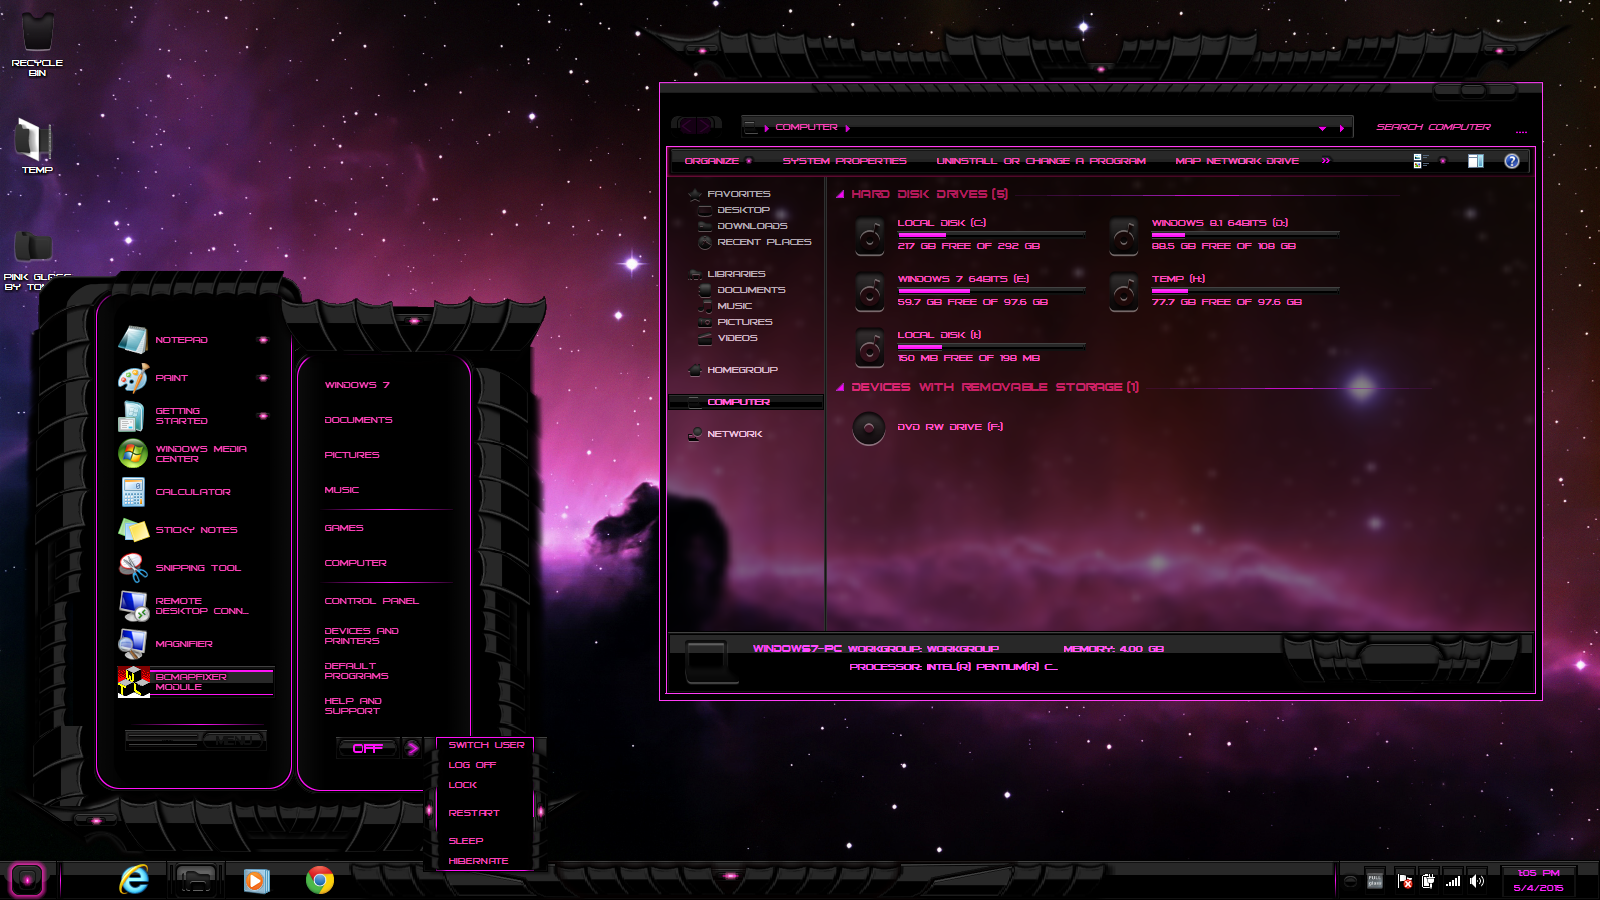 free download of desktop themes for windows 7